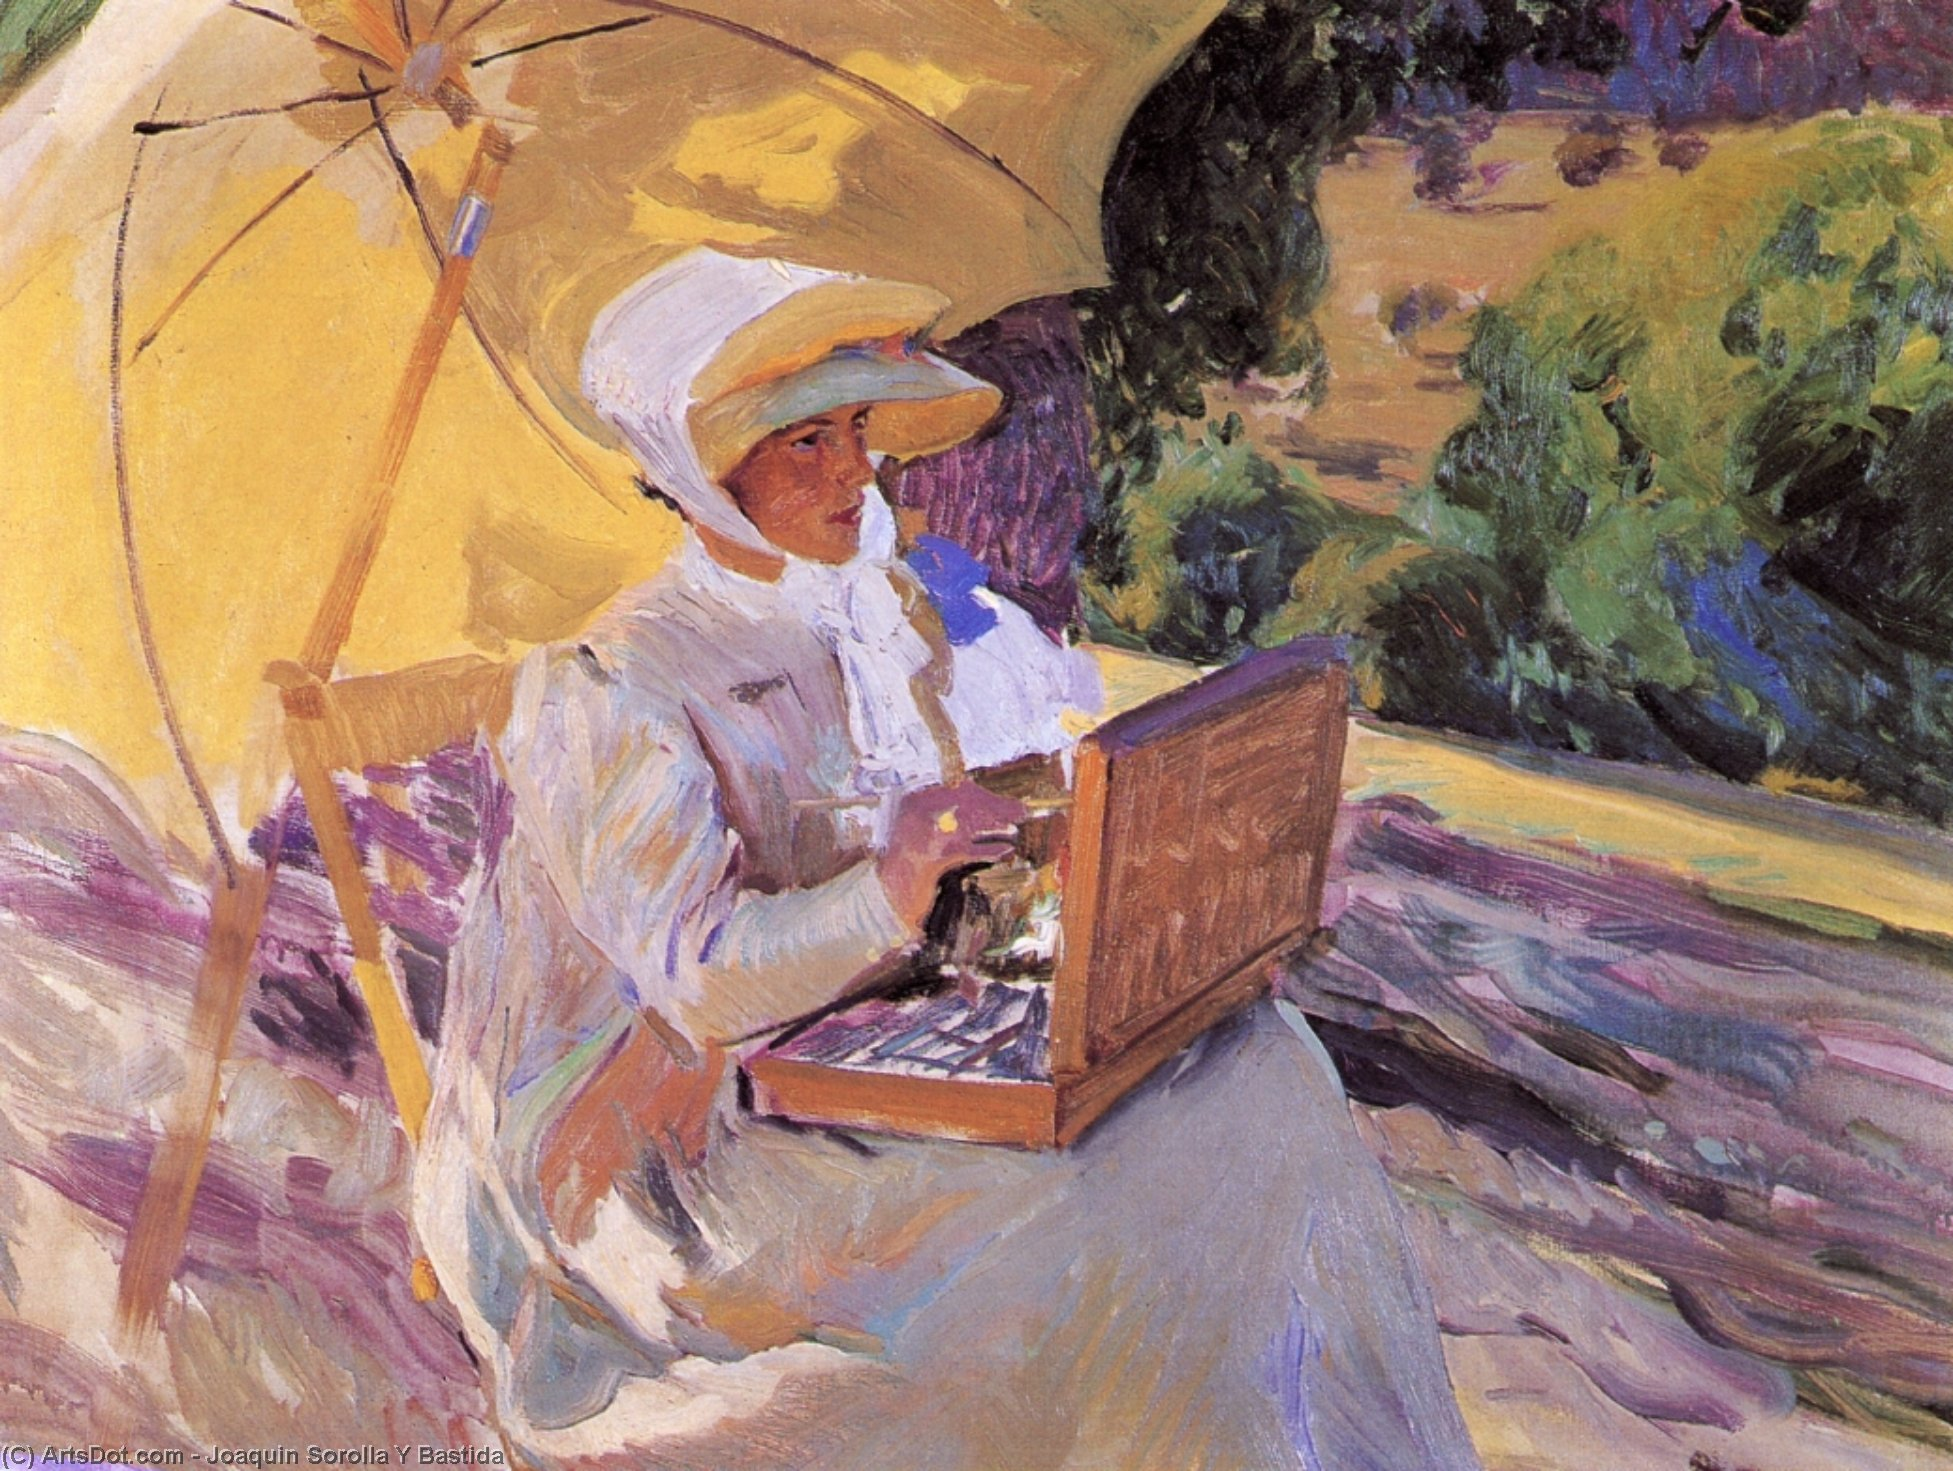 Maria Painting in El Pardo, Oil On Canvas by Joaquin Sorolla Y Bastida (1863-1923, Spain)